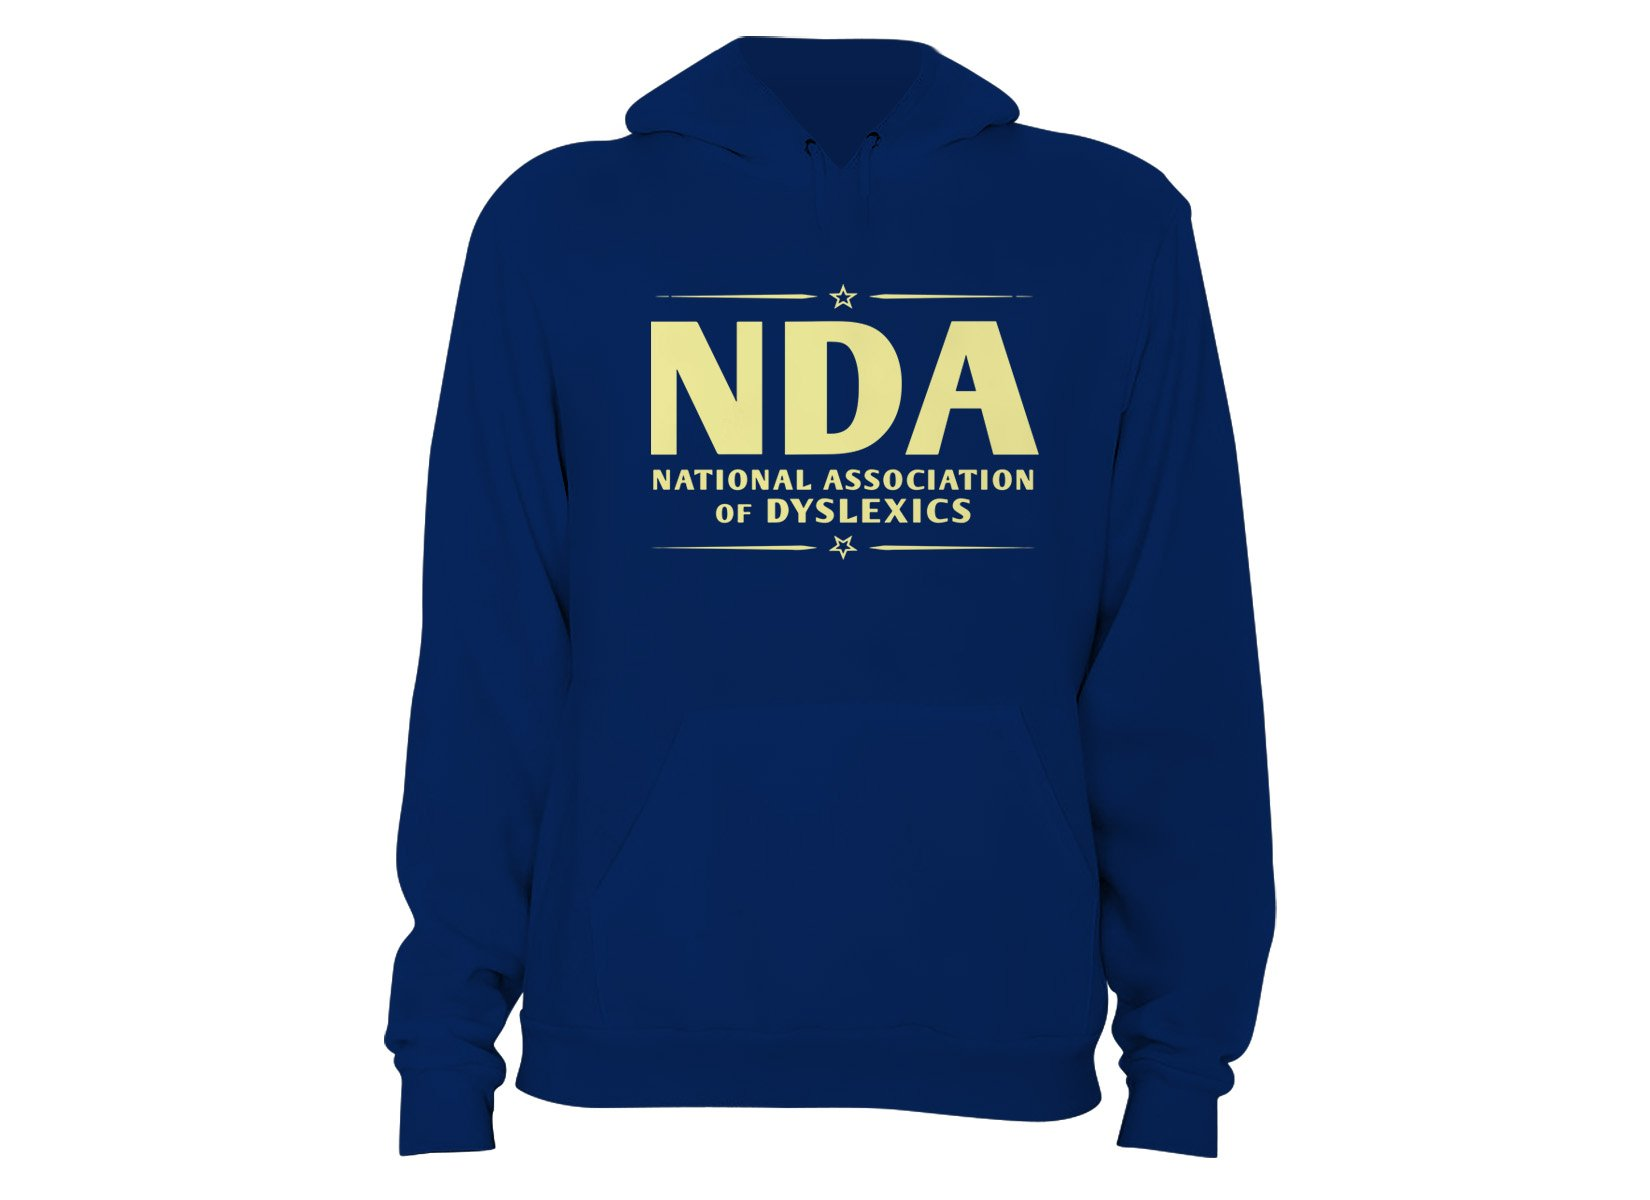 National Association of Dyslexics on Hoodie